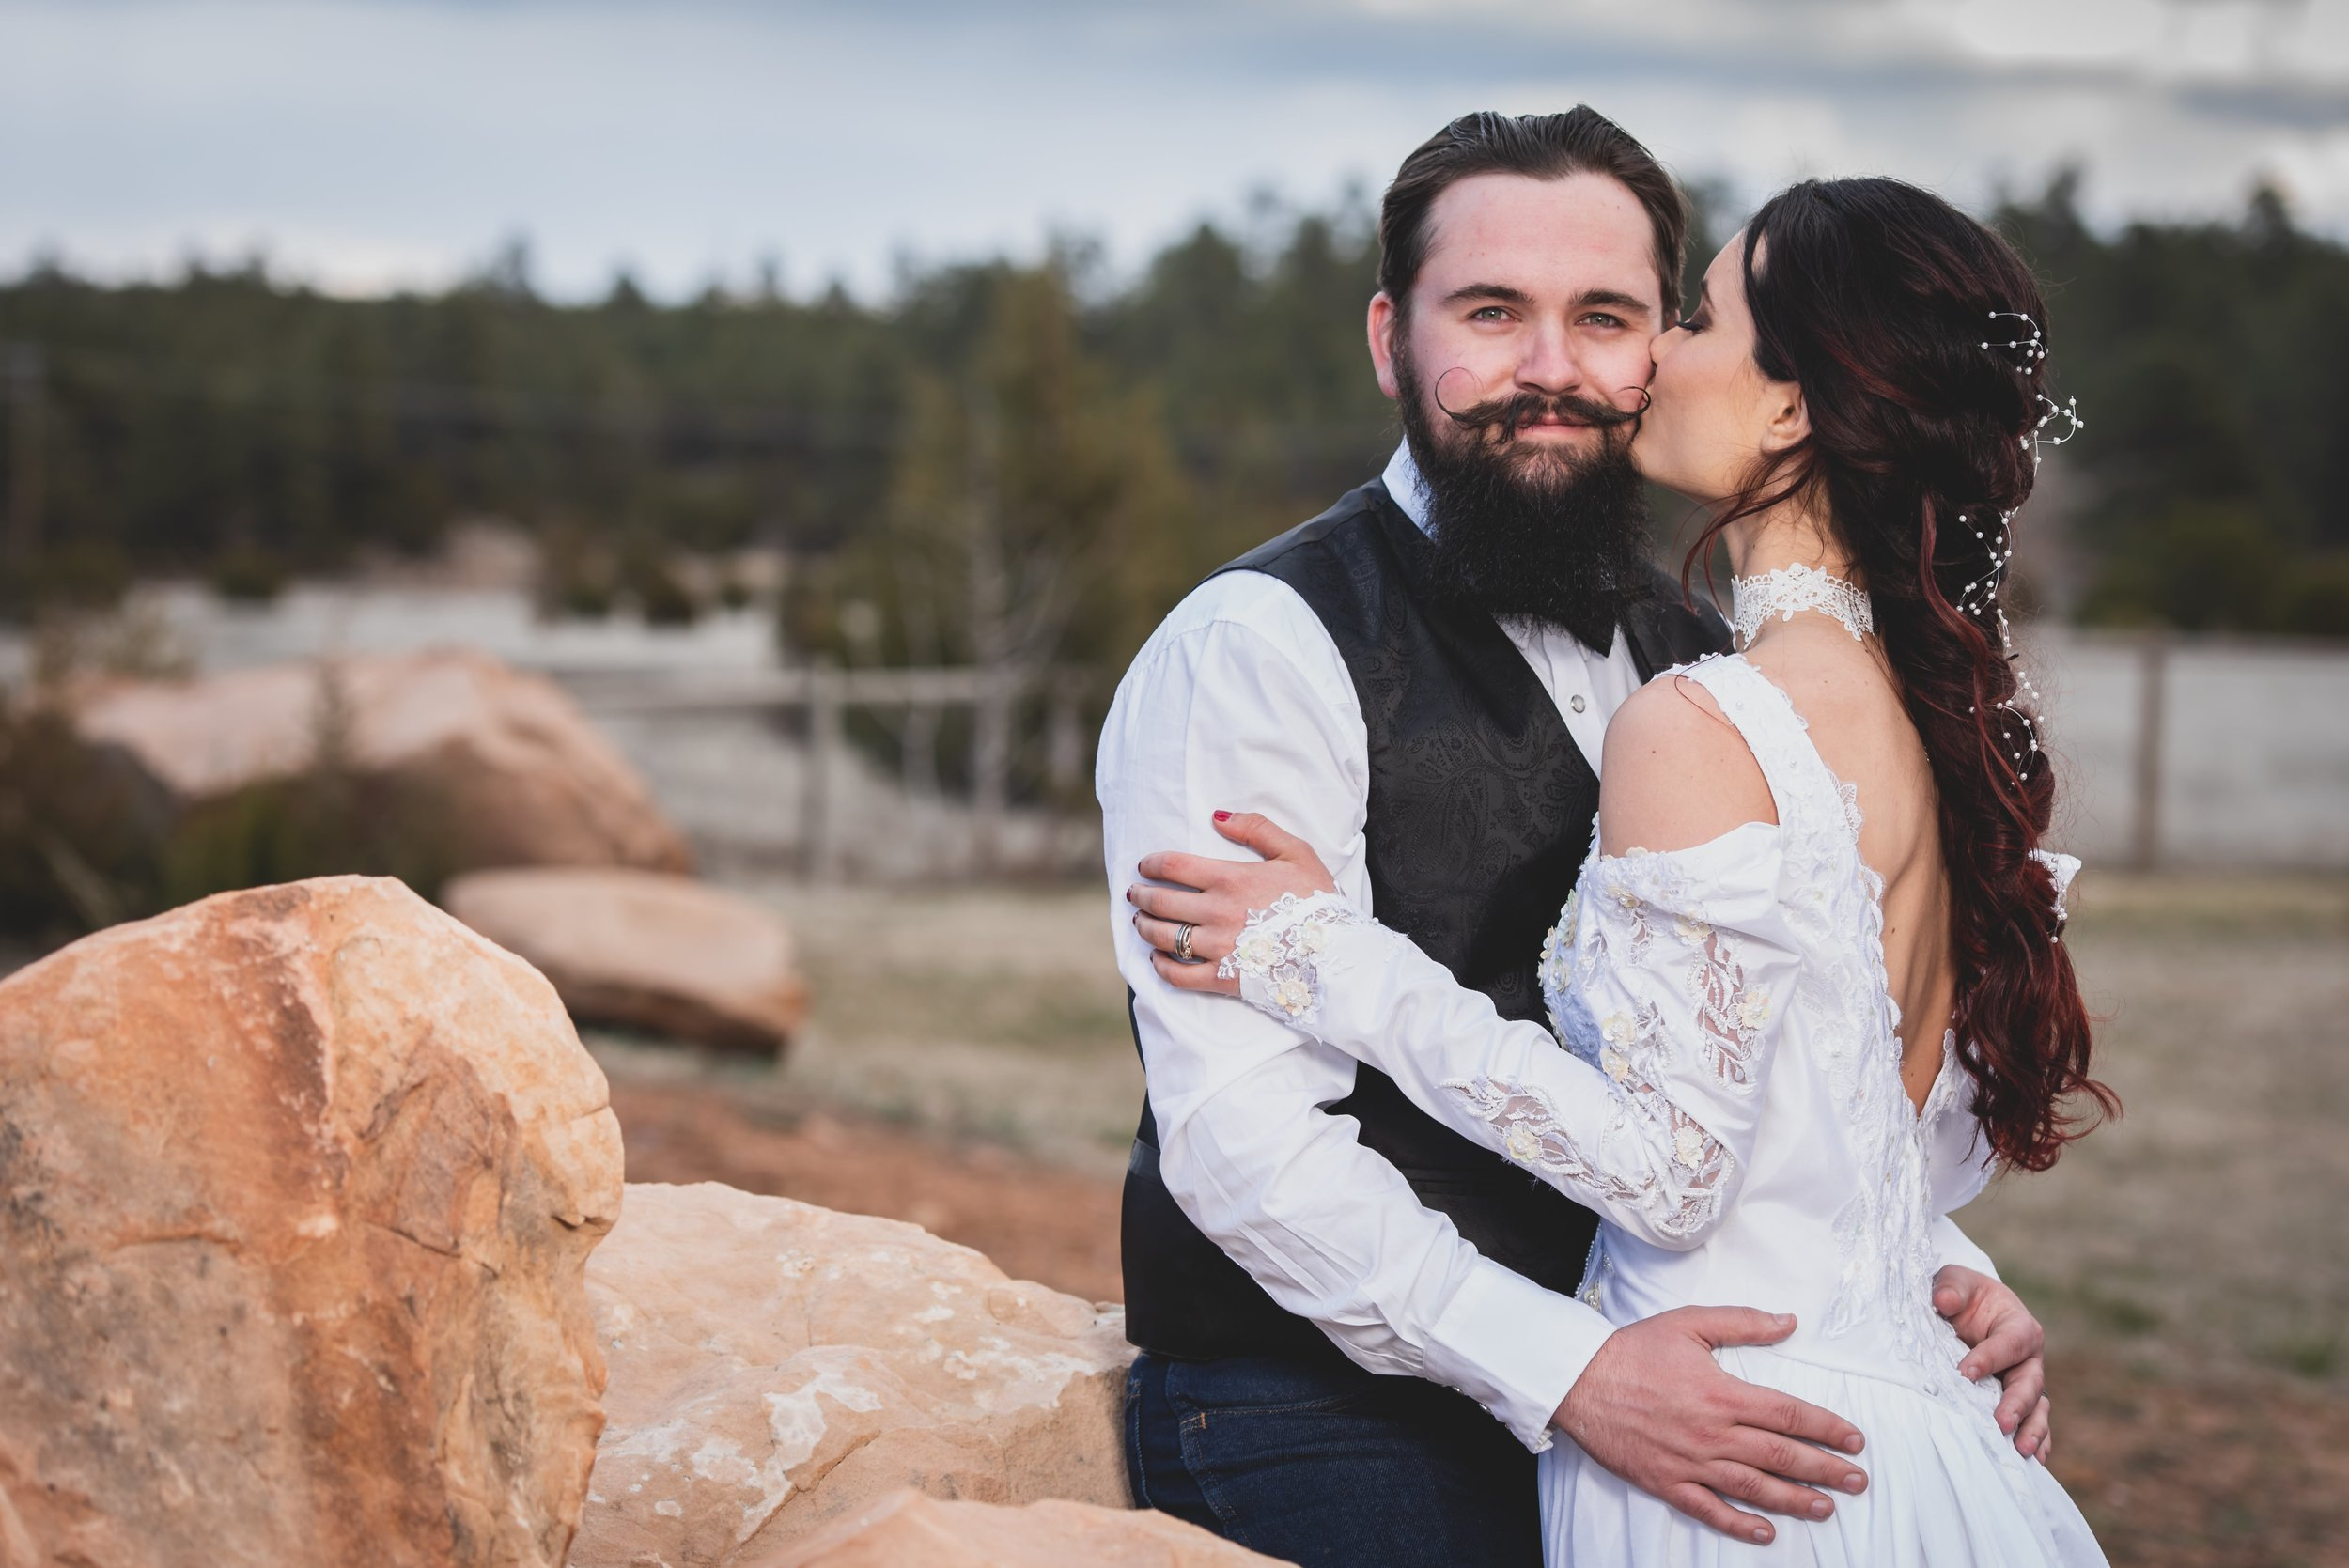 Wedding Photography Arizona - Bride kissing groom on the cheek on a faded red rock.